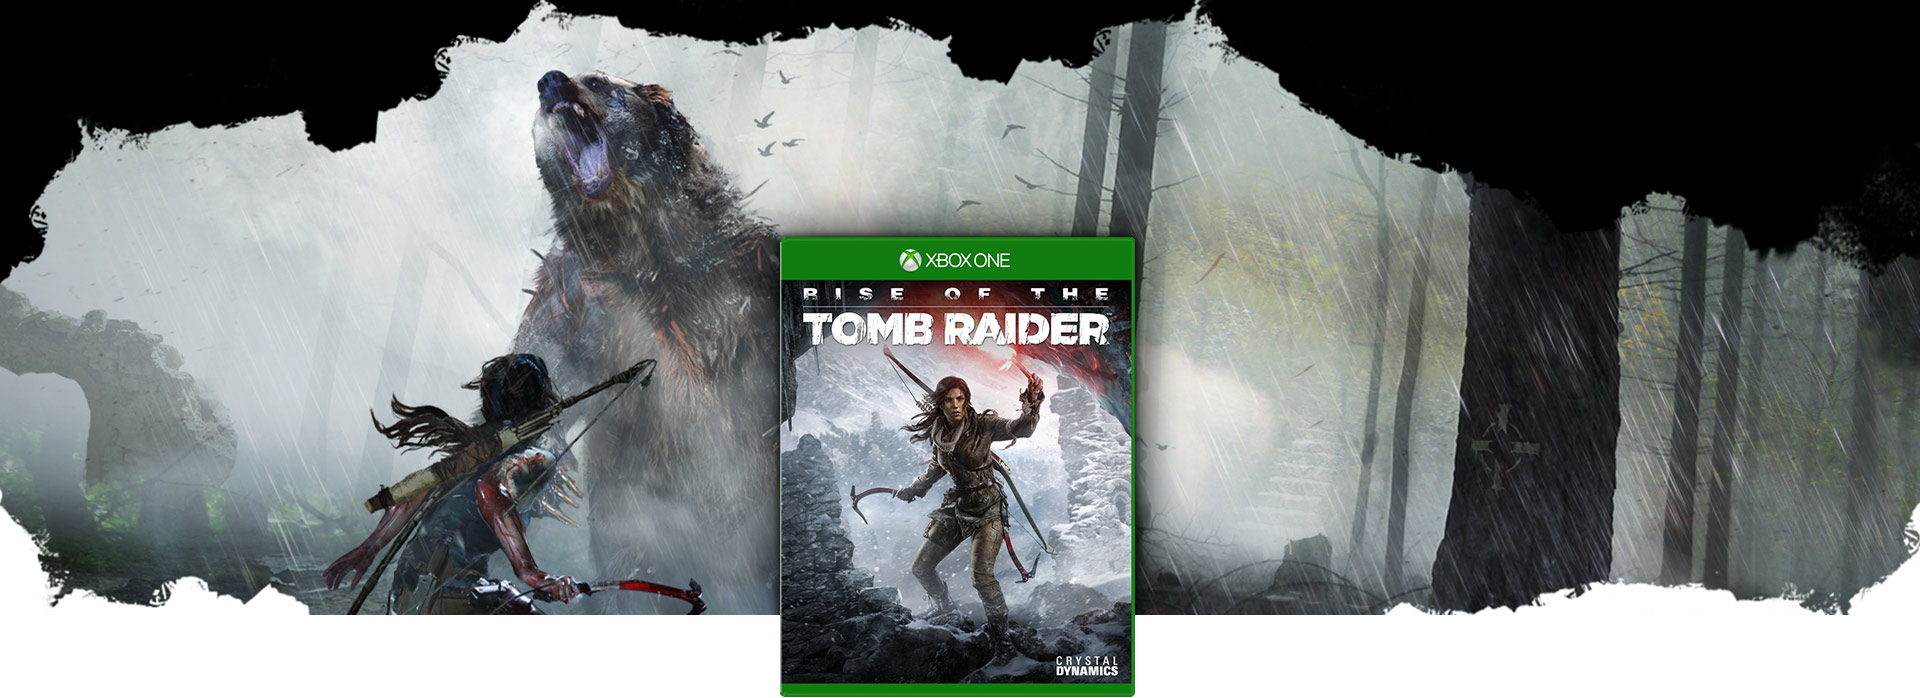 Rise of the Tomb Raider dobozának képe